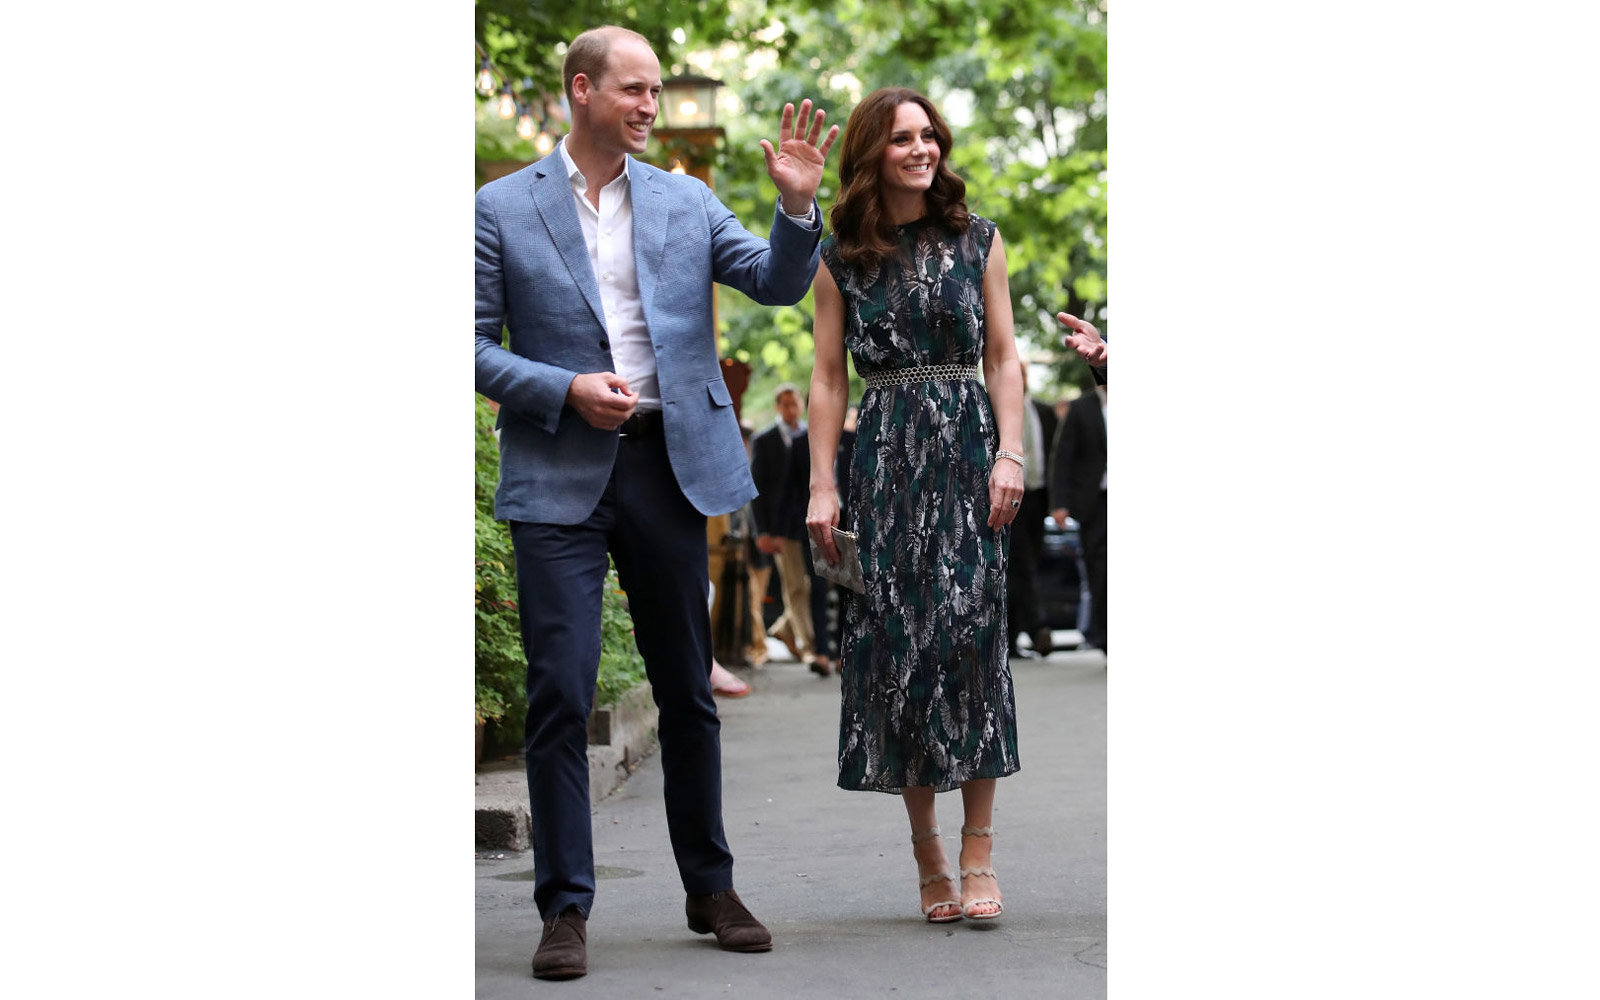 HEIDELBERG, GERMANY - JULY 20:  Prince William, Duke of Cambridge and Catherine, Duchess of Cambridge arrive at the last original dancehall in Berlin, the Cl‰rchens Ballhaus, to attend a reception on day 2 of their official visit to Germany on July 20,